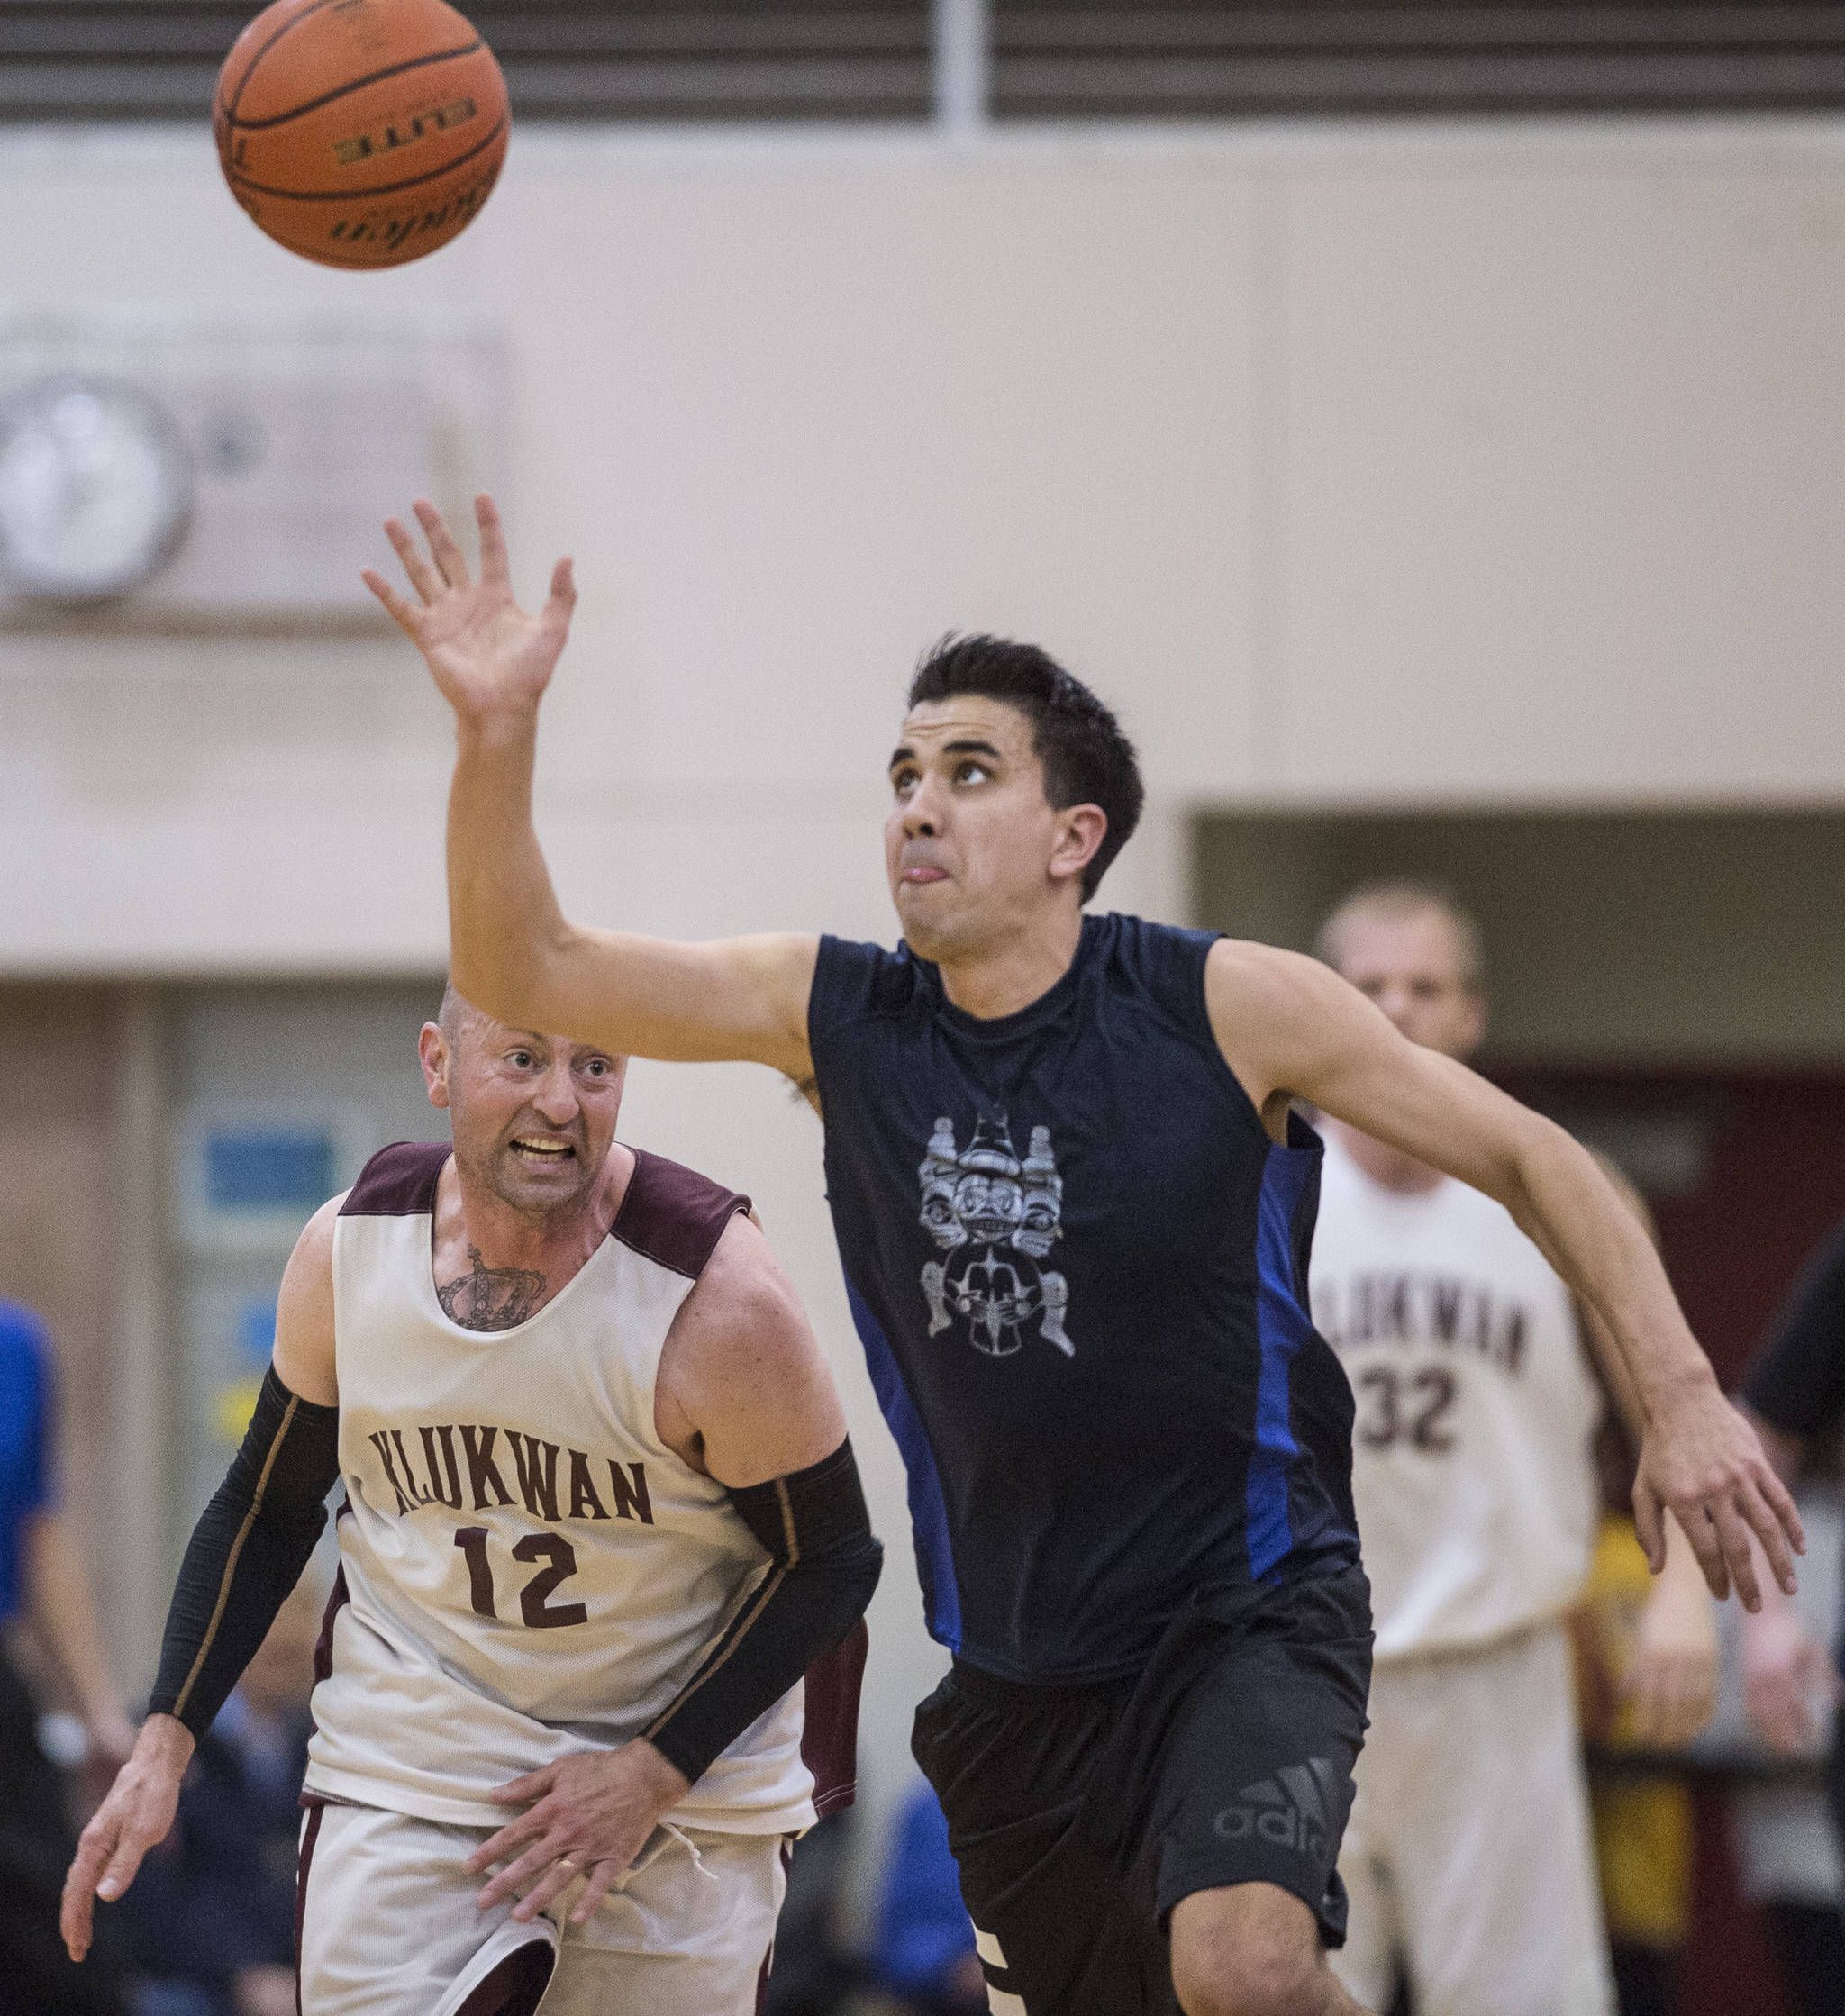 Hydaburg's Ben Young, right, steals the ball from Klukwan's Jason Shull in the C final at the Gold Medal Basketball Tournament on Saturday, March 23, 2019. Hydaburg won 93-81. (Michael Penn | Juneau Empire)